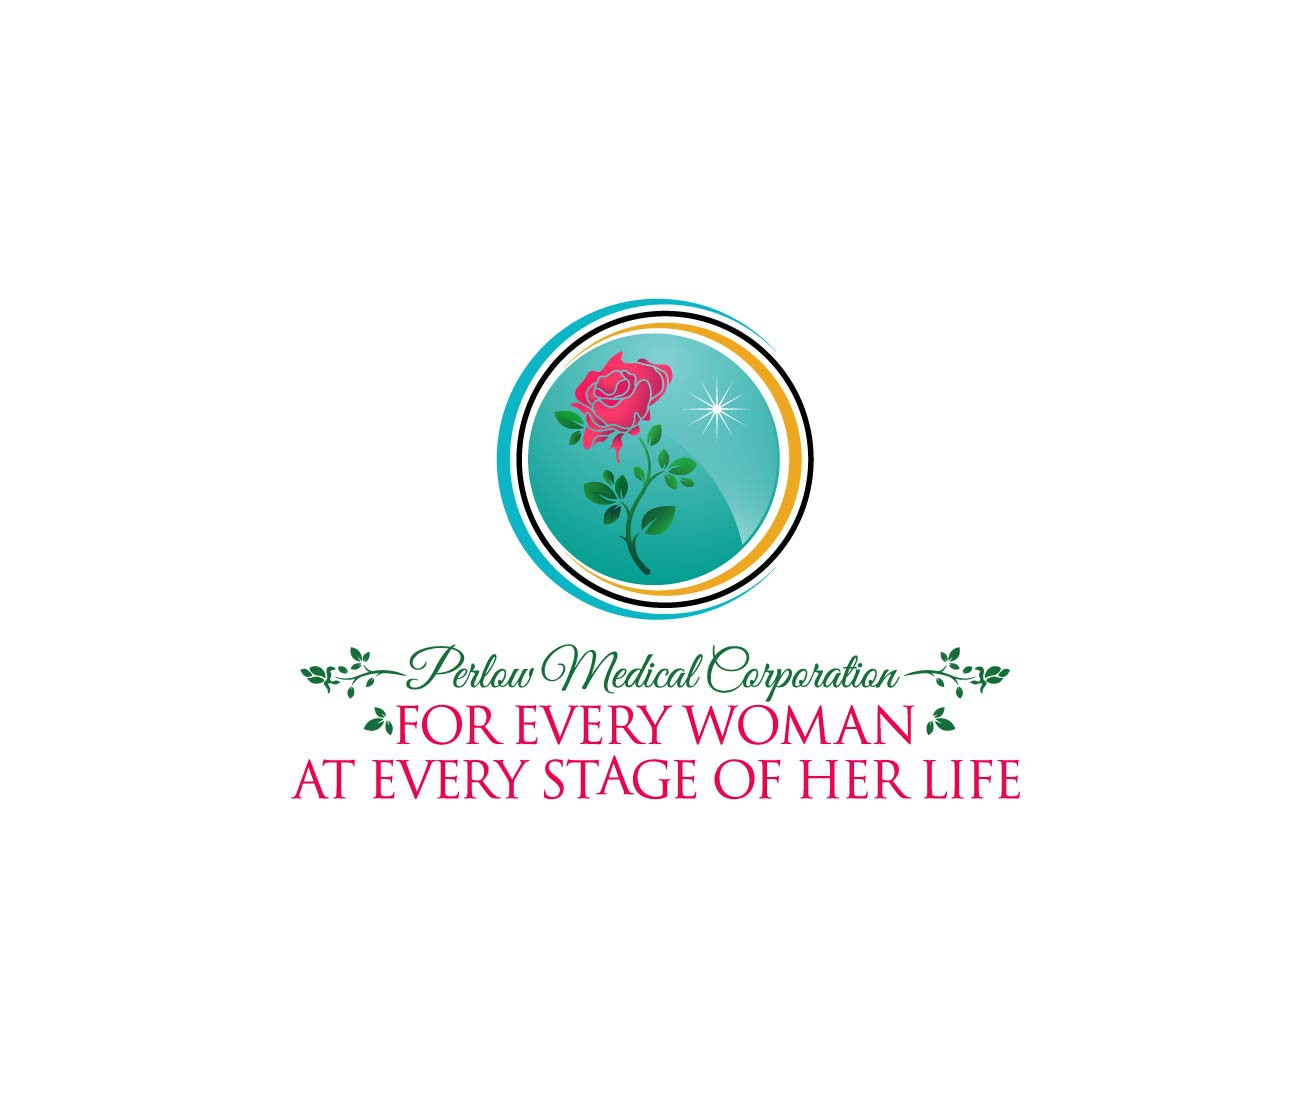 Create beautiful Logo that reflects personalized healthcare for women everywhere